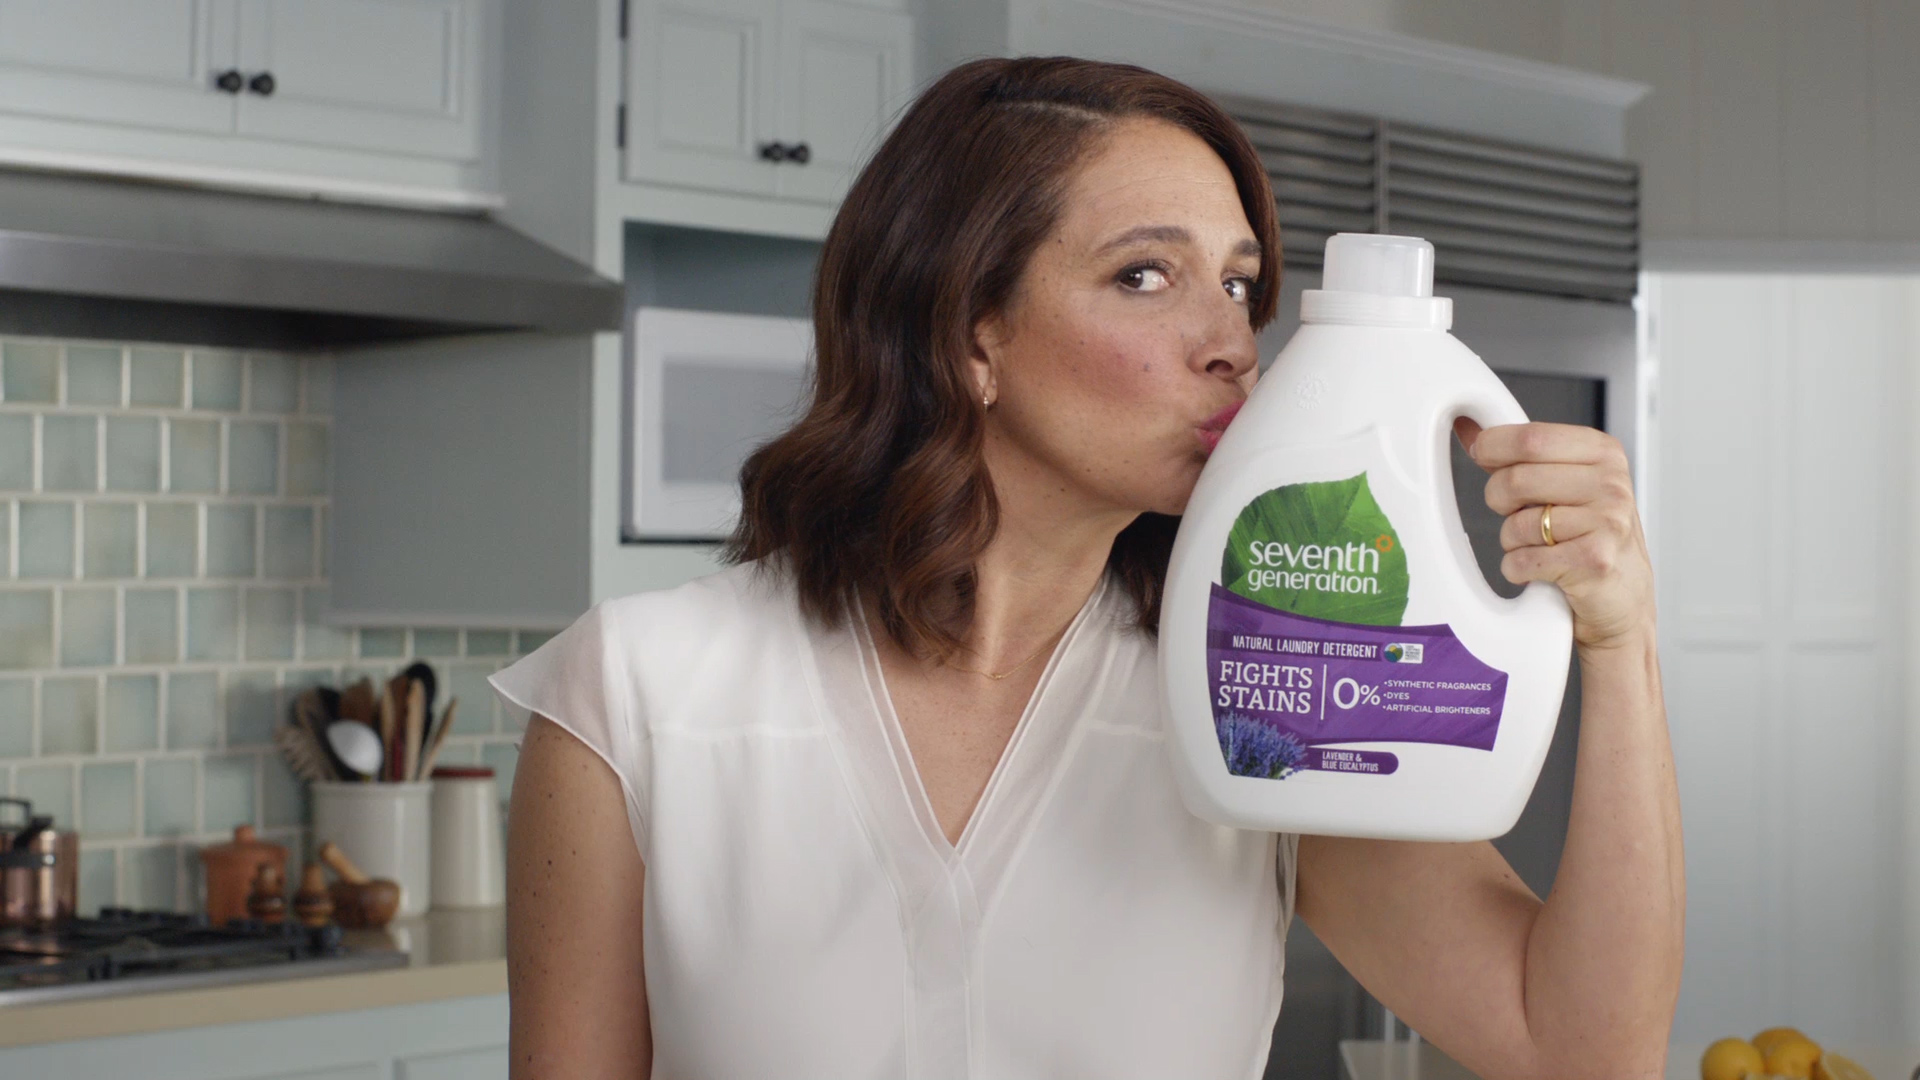 Maya Rudolph is a new spokeswoman for Seventh Generation's household goods advertising campaign.